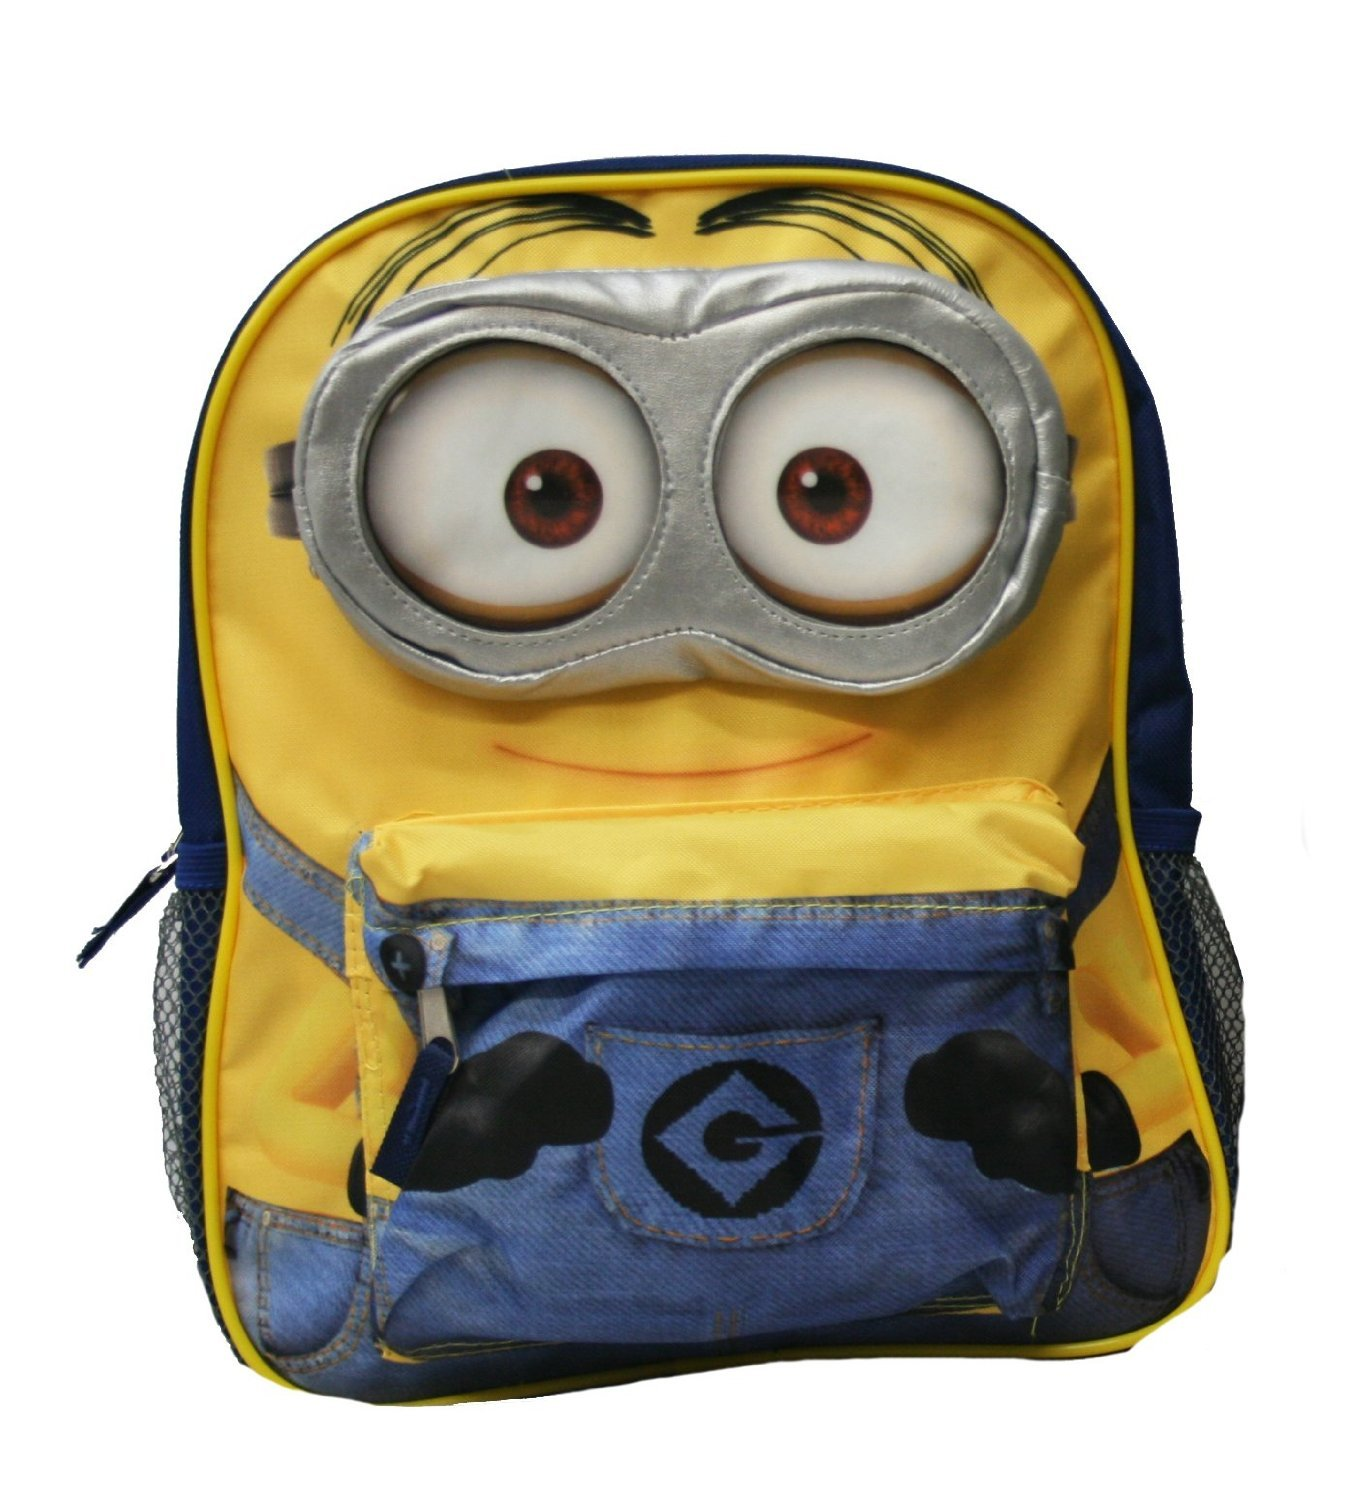 Small Backpack - Despicable Me 2 - 12 Minion New School Boys Bag 085562-2 Accessory Innovations